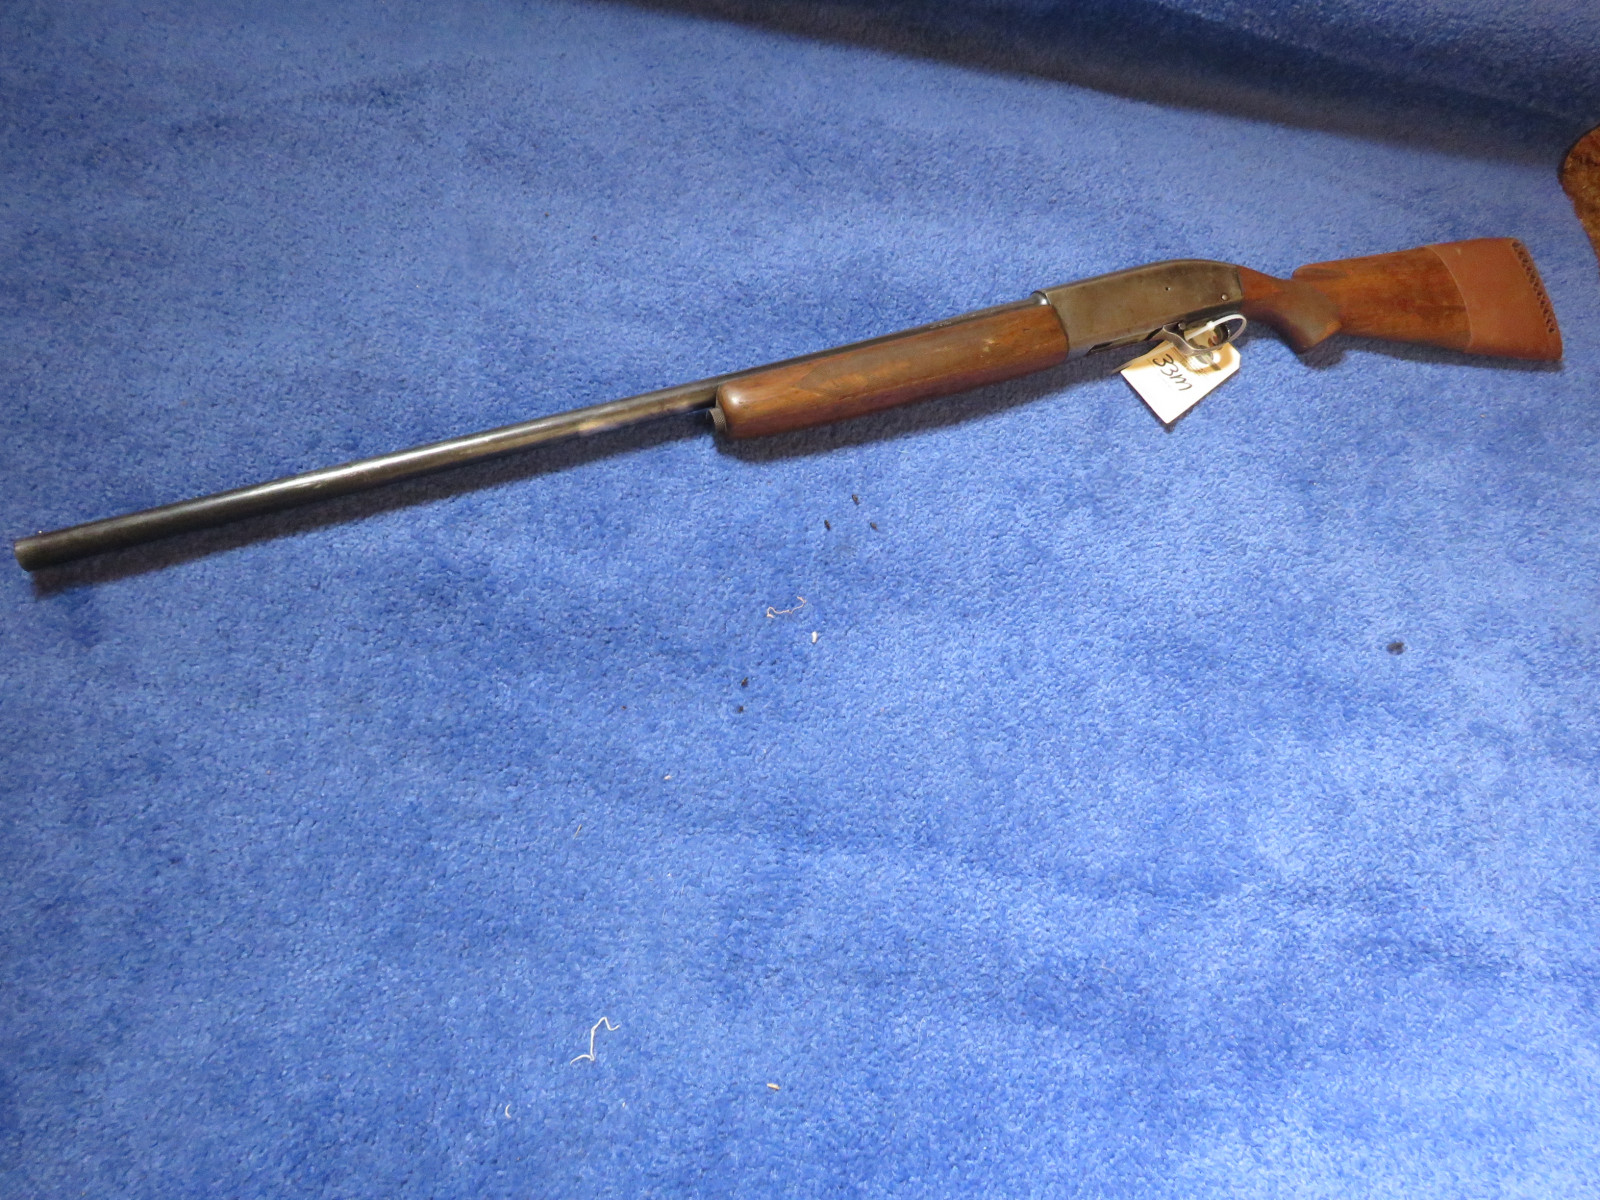 Winchester Model 50 12 Gauge Shotgun - Image 2